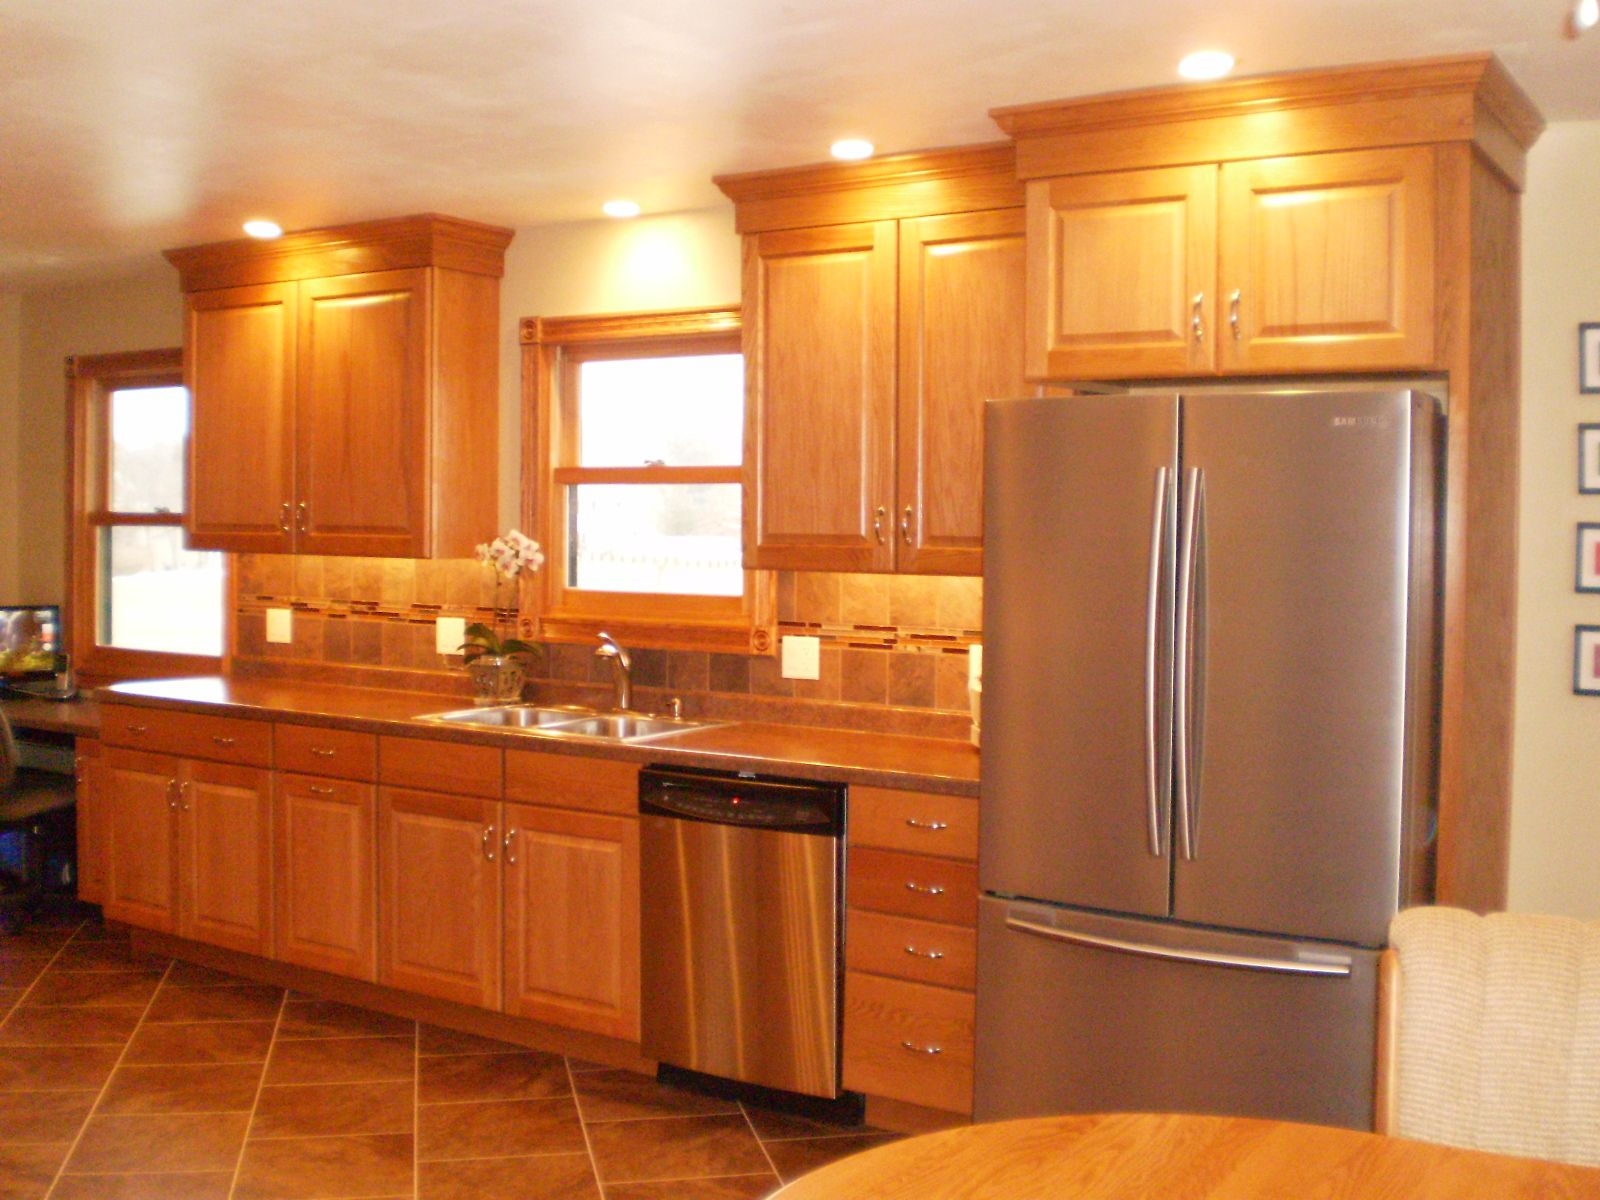 Pin By Floor To Ceiling On Shuman Kitchen Honey Oak Cabinets Oak Cabinets Kitchen Flooring